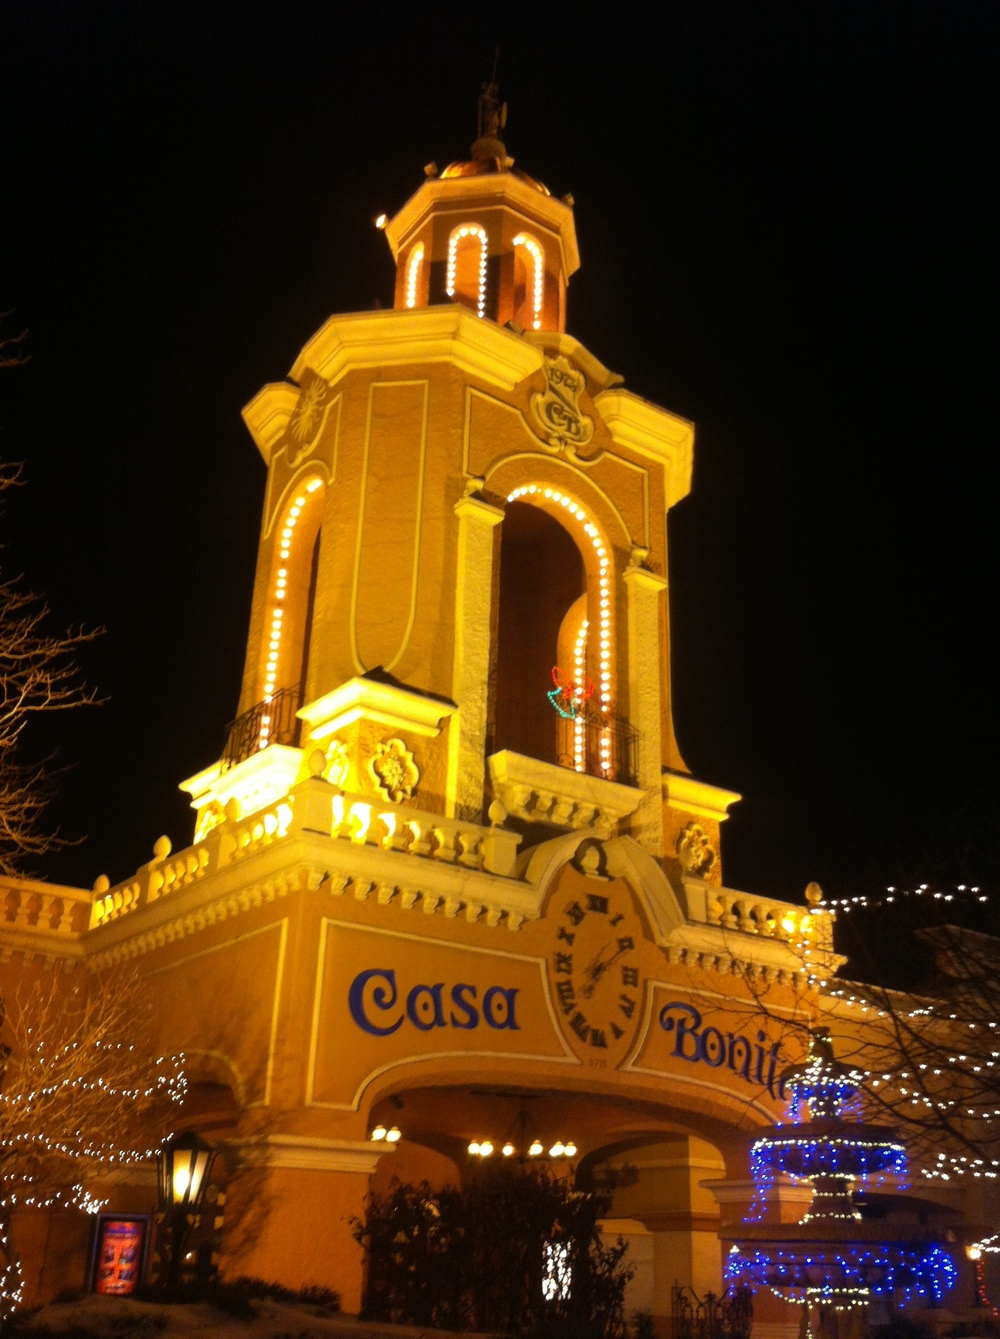 1. Casa Bonita; The worlds most exciting restaurant / The Disneyland of Mexican eateries!! Founder Bill Waugh opened the first Casa Bonita restaurant in Oklahoma, in 1968. By the mid-1970s, the chain had expanded to locations in adjacent states; the Denver restaurant (1974) is the last stand of the Casa Bonita Empire On the top of Casa Bonita's facade there is a copy of the sculpture of Cuitlahuac, the original one is situated in Paseo de la Reforma in Mexico City.